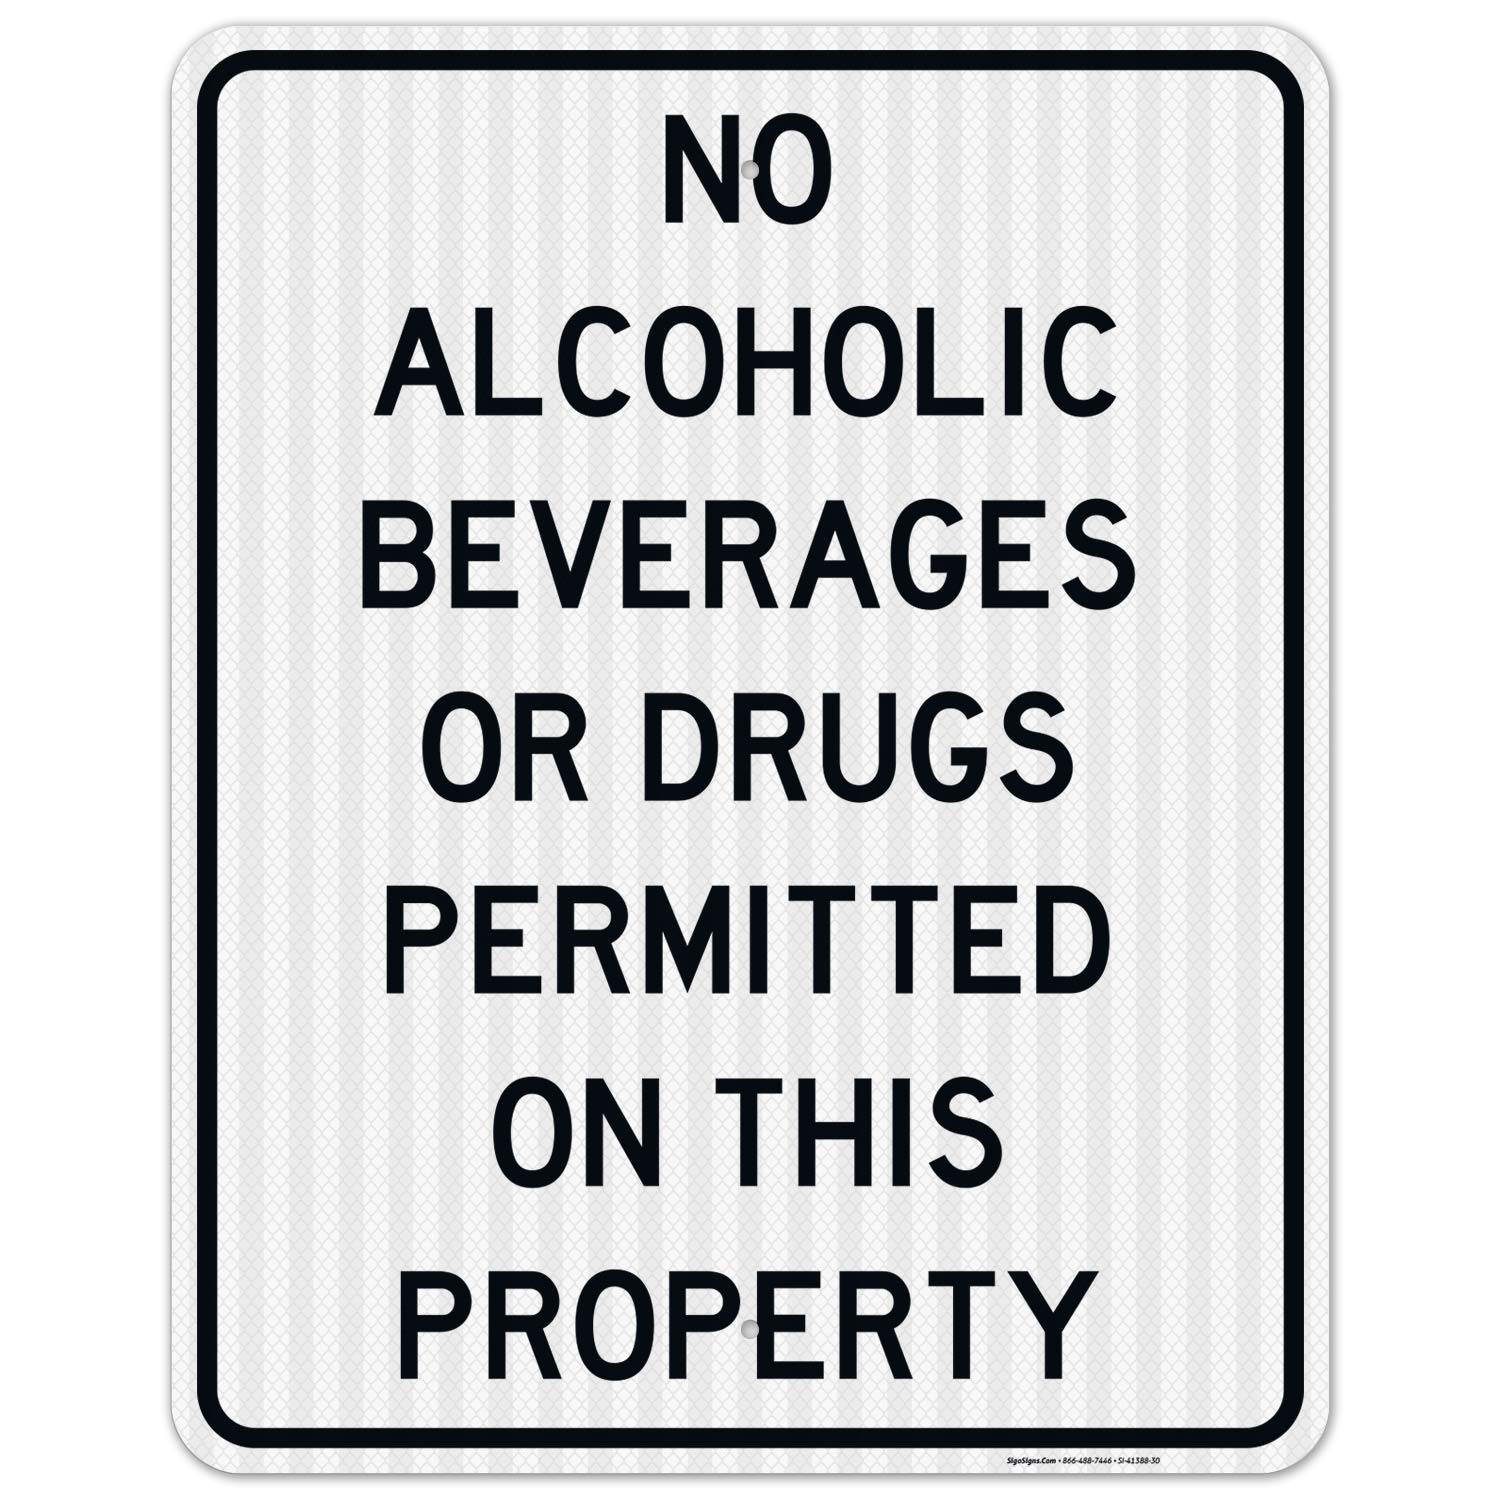 No Drugs Or Alcohol Sign 2021 autumn and winter new 24x30 .080 EGP Inches A Reflective Cheap 3M